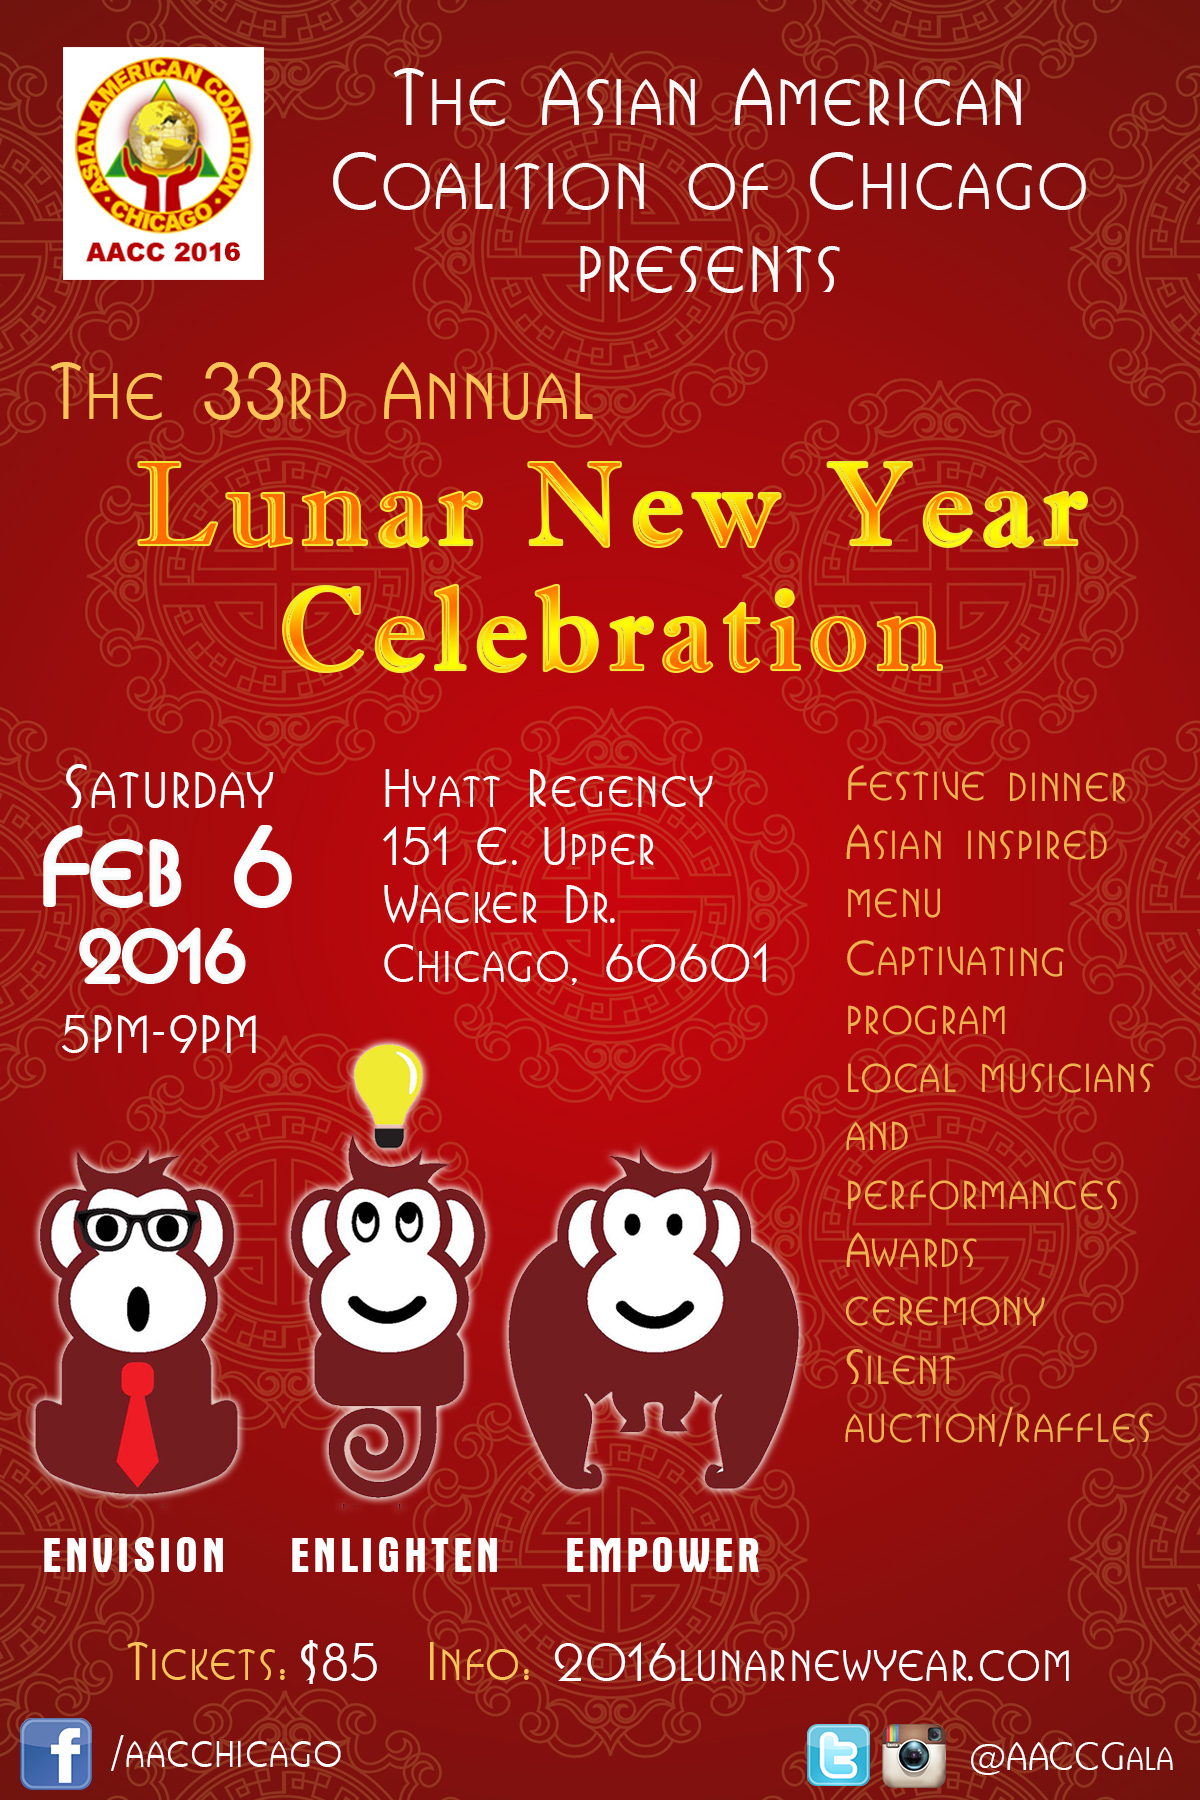 33rd Annual Asian American Coalition Of Chicago Lunar New